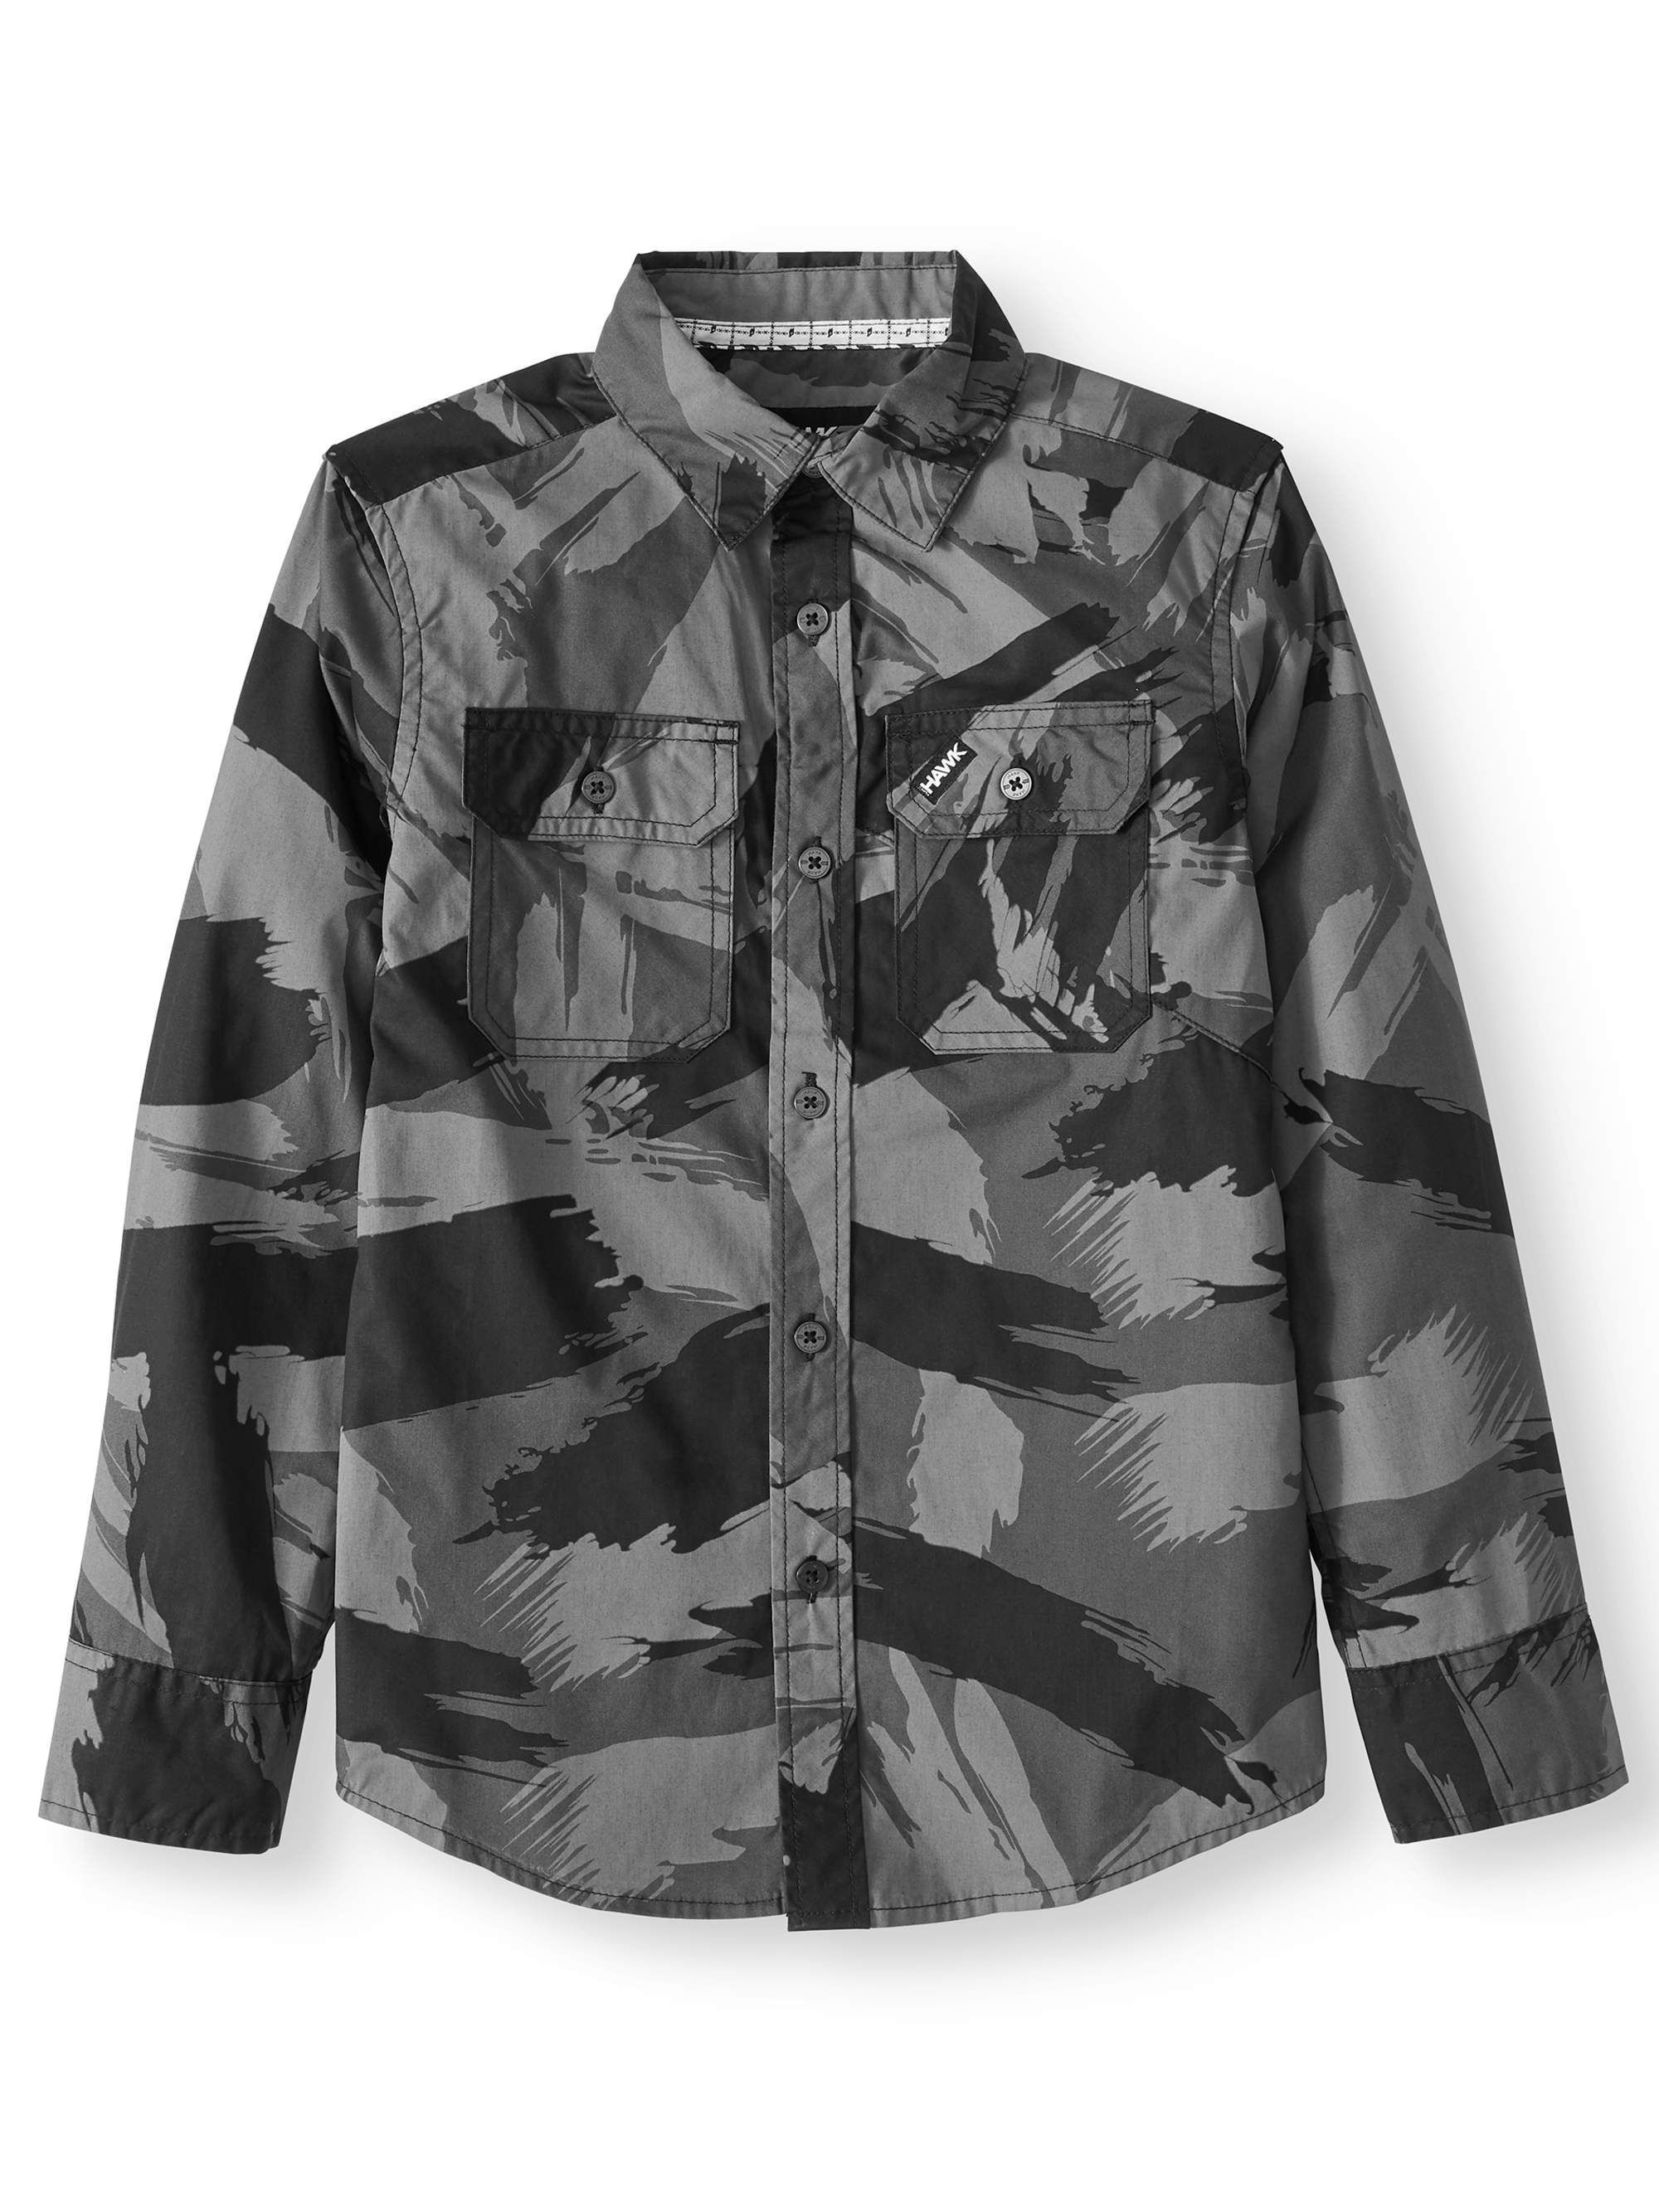 Long Sleeve Button DoAll Over Print Shirt (Big Boys)